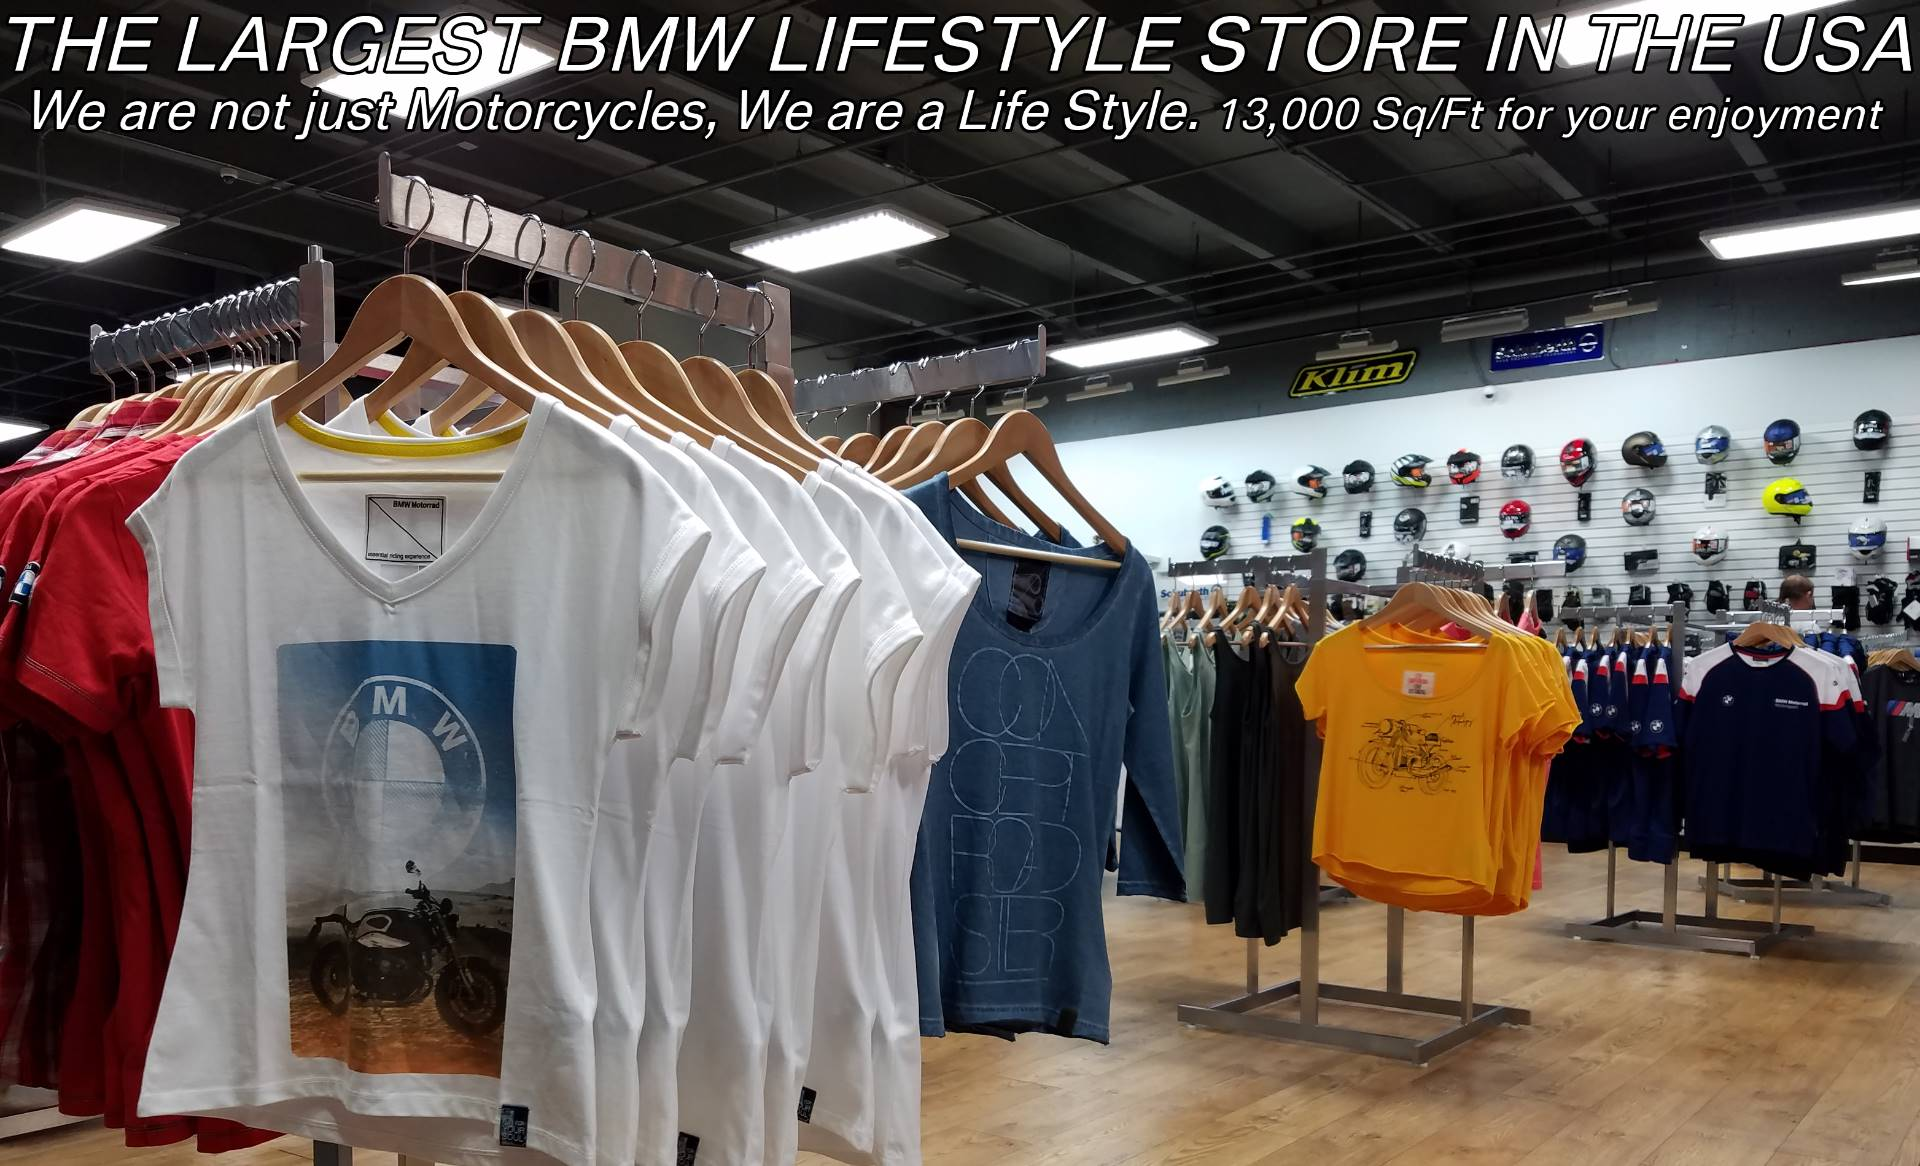 BMW Motorcycles of Miami, Motorcycles of Miami, Motorcycles Miami, New Motorcycles, Used Motorcycles, pre-owned. #BMWMotorcyclesOfMiami #MotorcyclesOfMiami - Photo 39